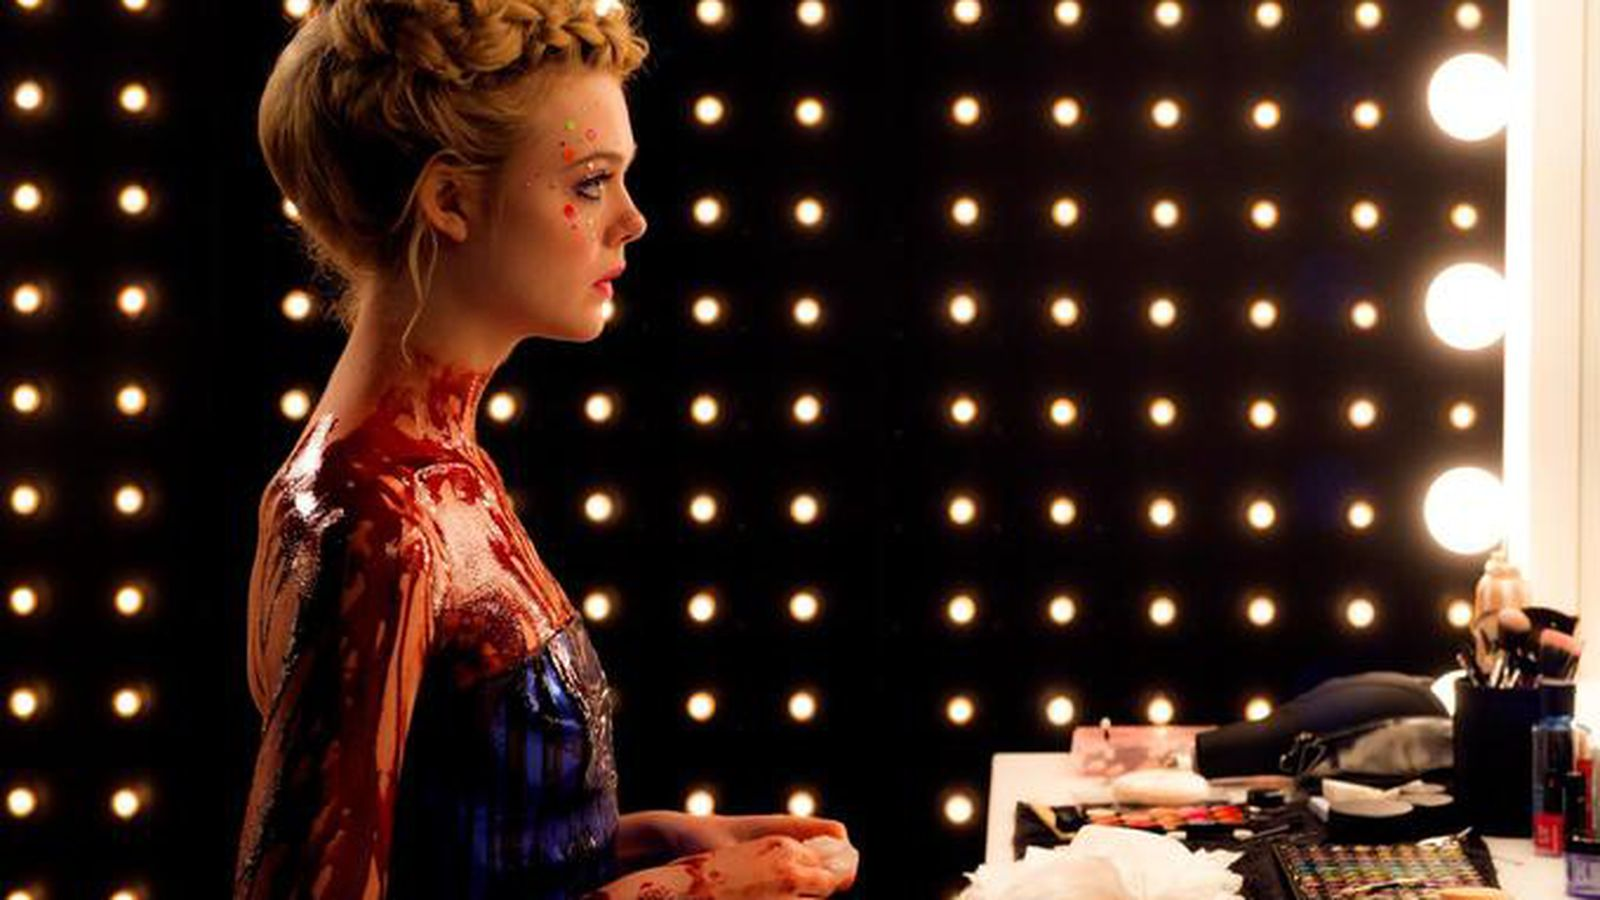 Wallpaper 3440x1440 Girl Will You Like The Upcoming Film The Neon Demon Let Our